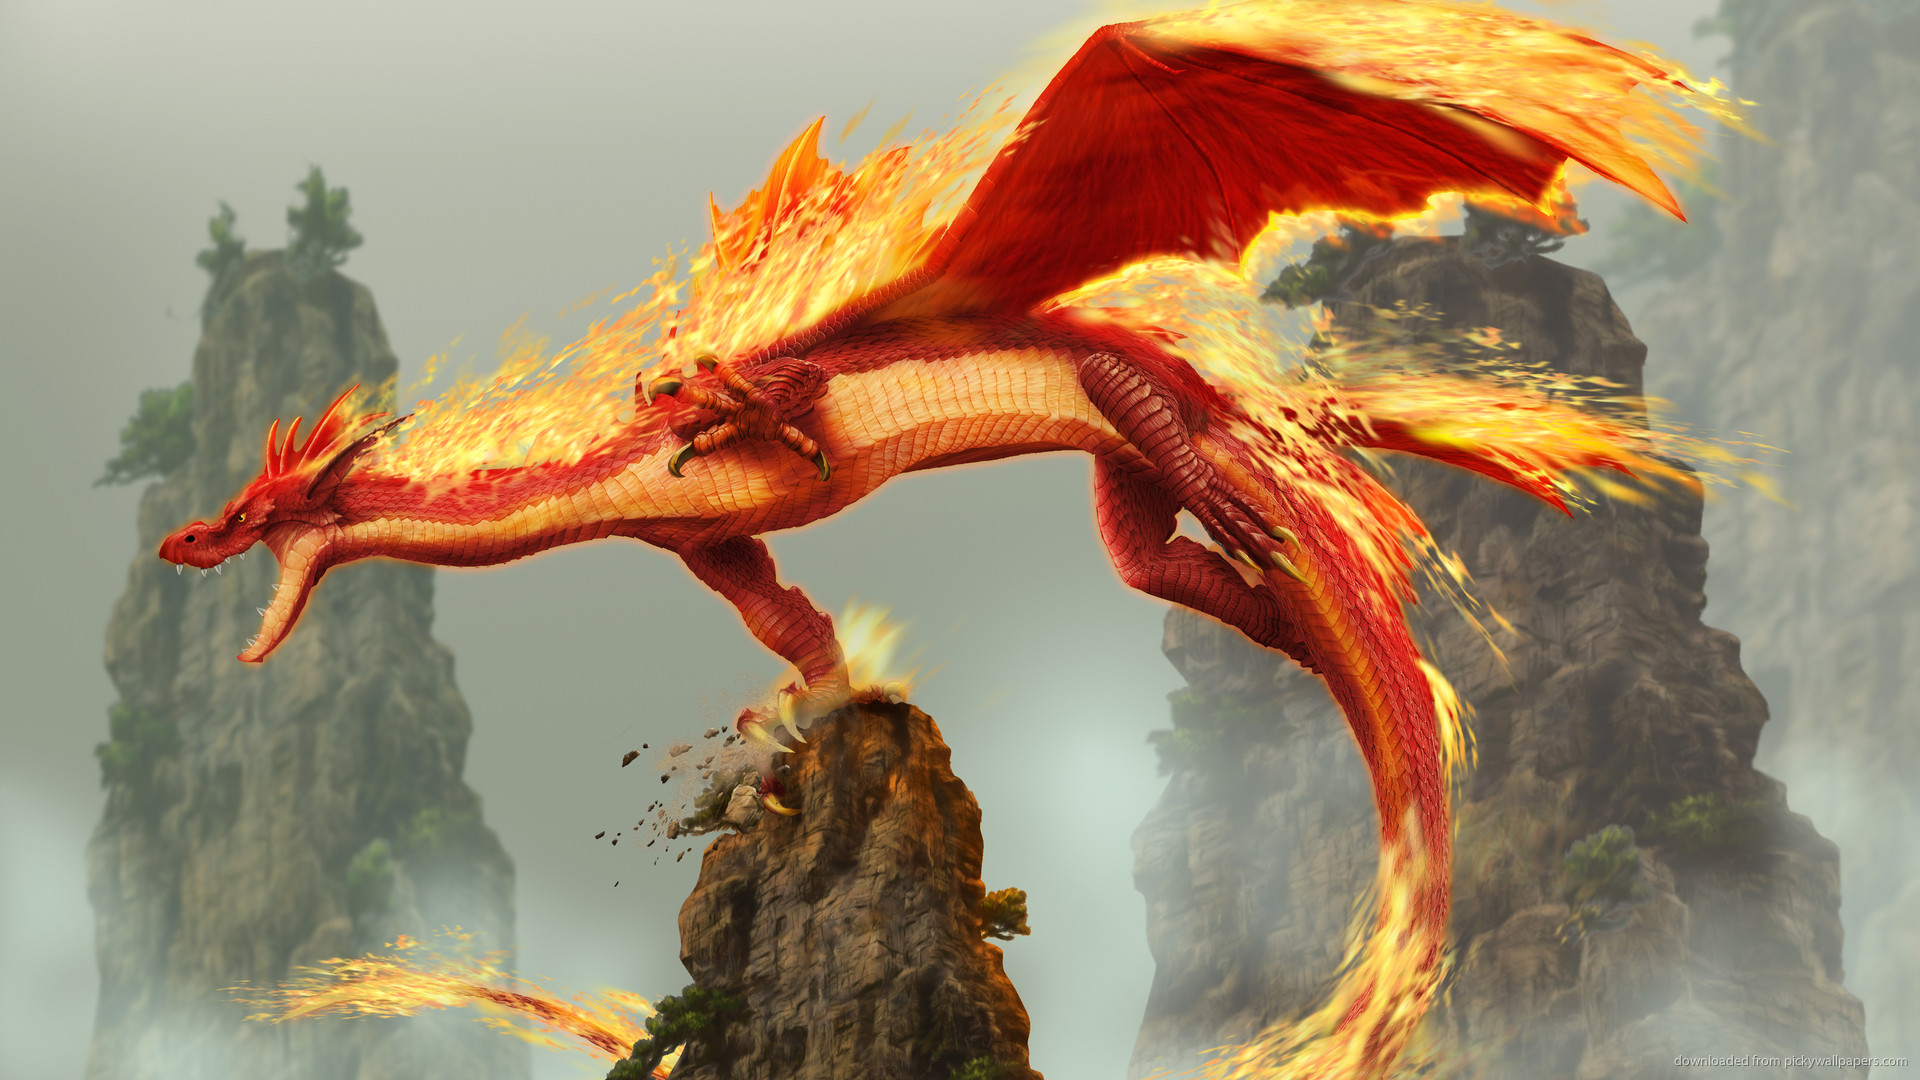 Fire Dragon for 1920×1080